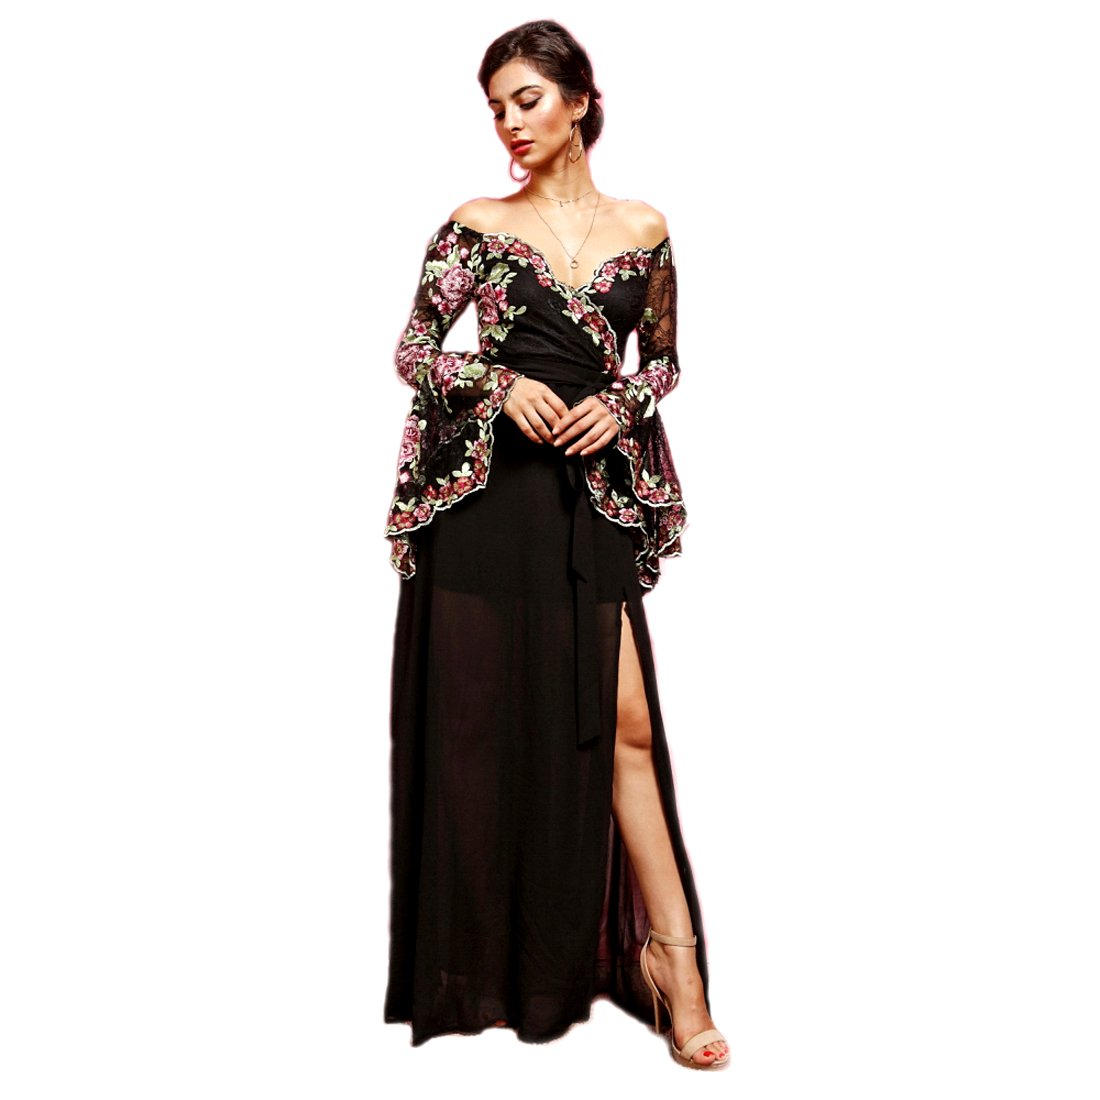 f0bbb8ee7eed0 Crazy4Bling Soieblu, Black Floral Off-The-Shoulder Long Bell Trumpet Sleeve  Maxi Dress, Large at Amazon Women's Clothing store: